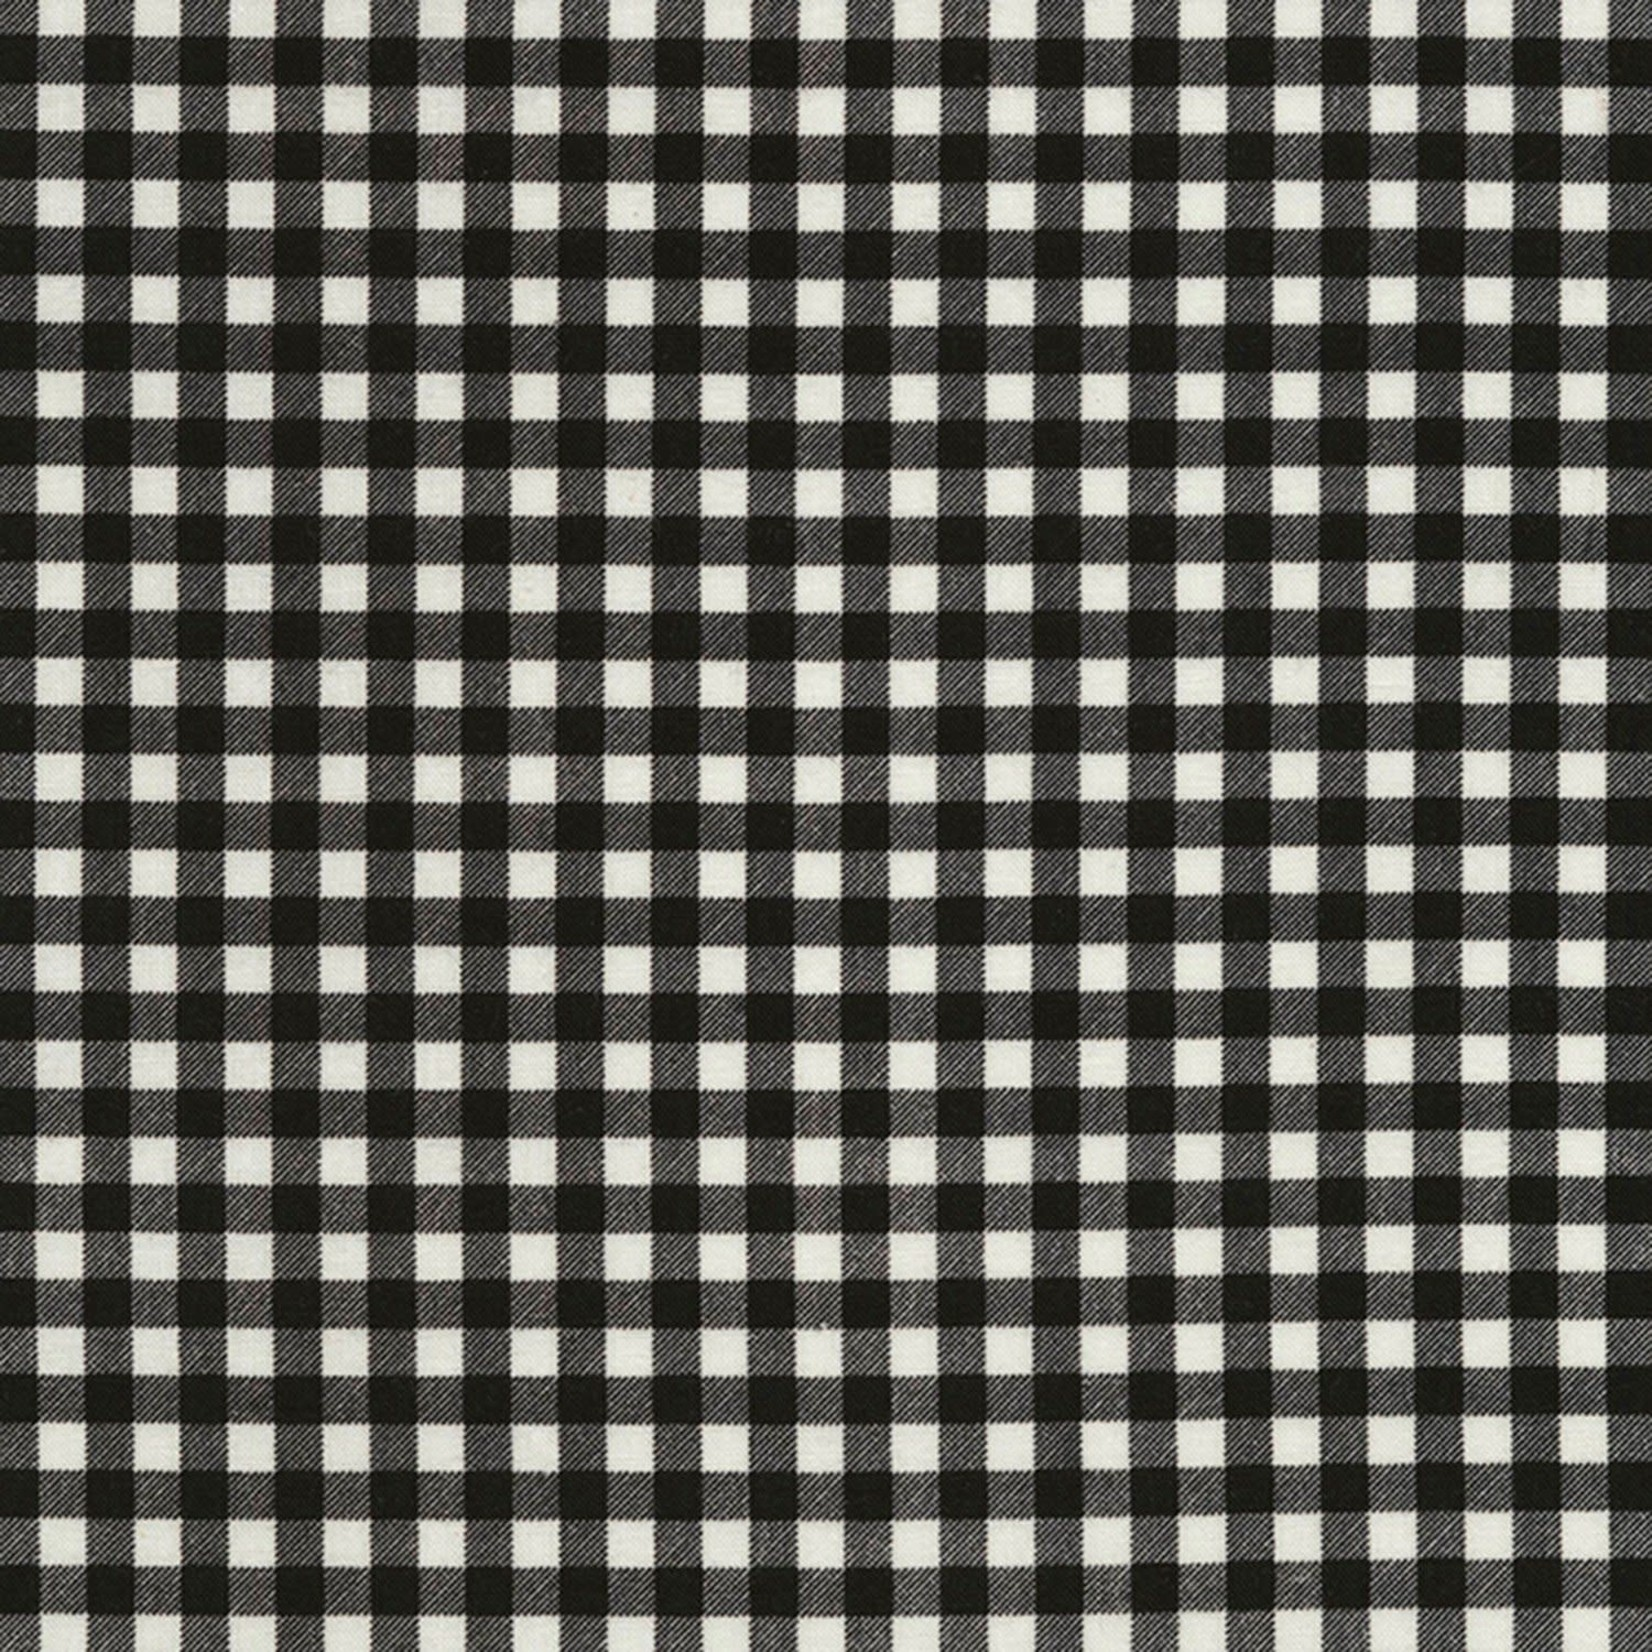 TIMELESS TREASURES TIMELESS TREASURES, PLAID, BLACK AND WHITE $0.20/CM OR $20/M